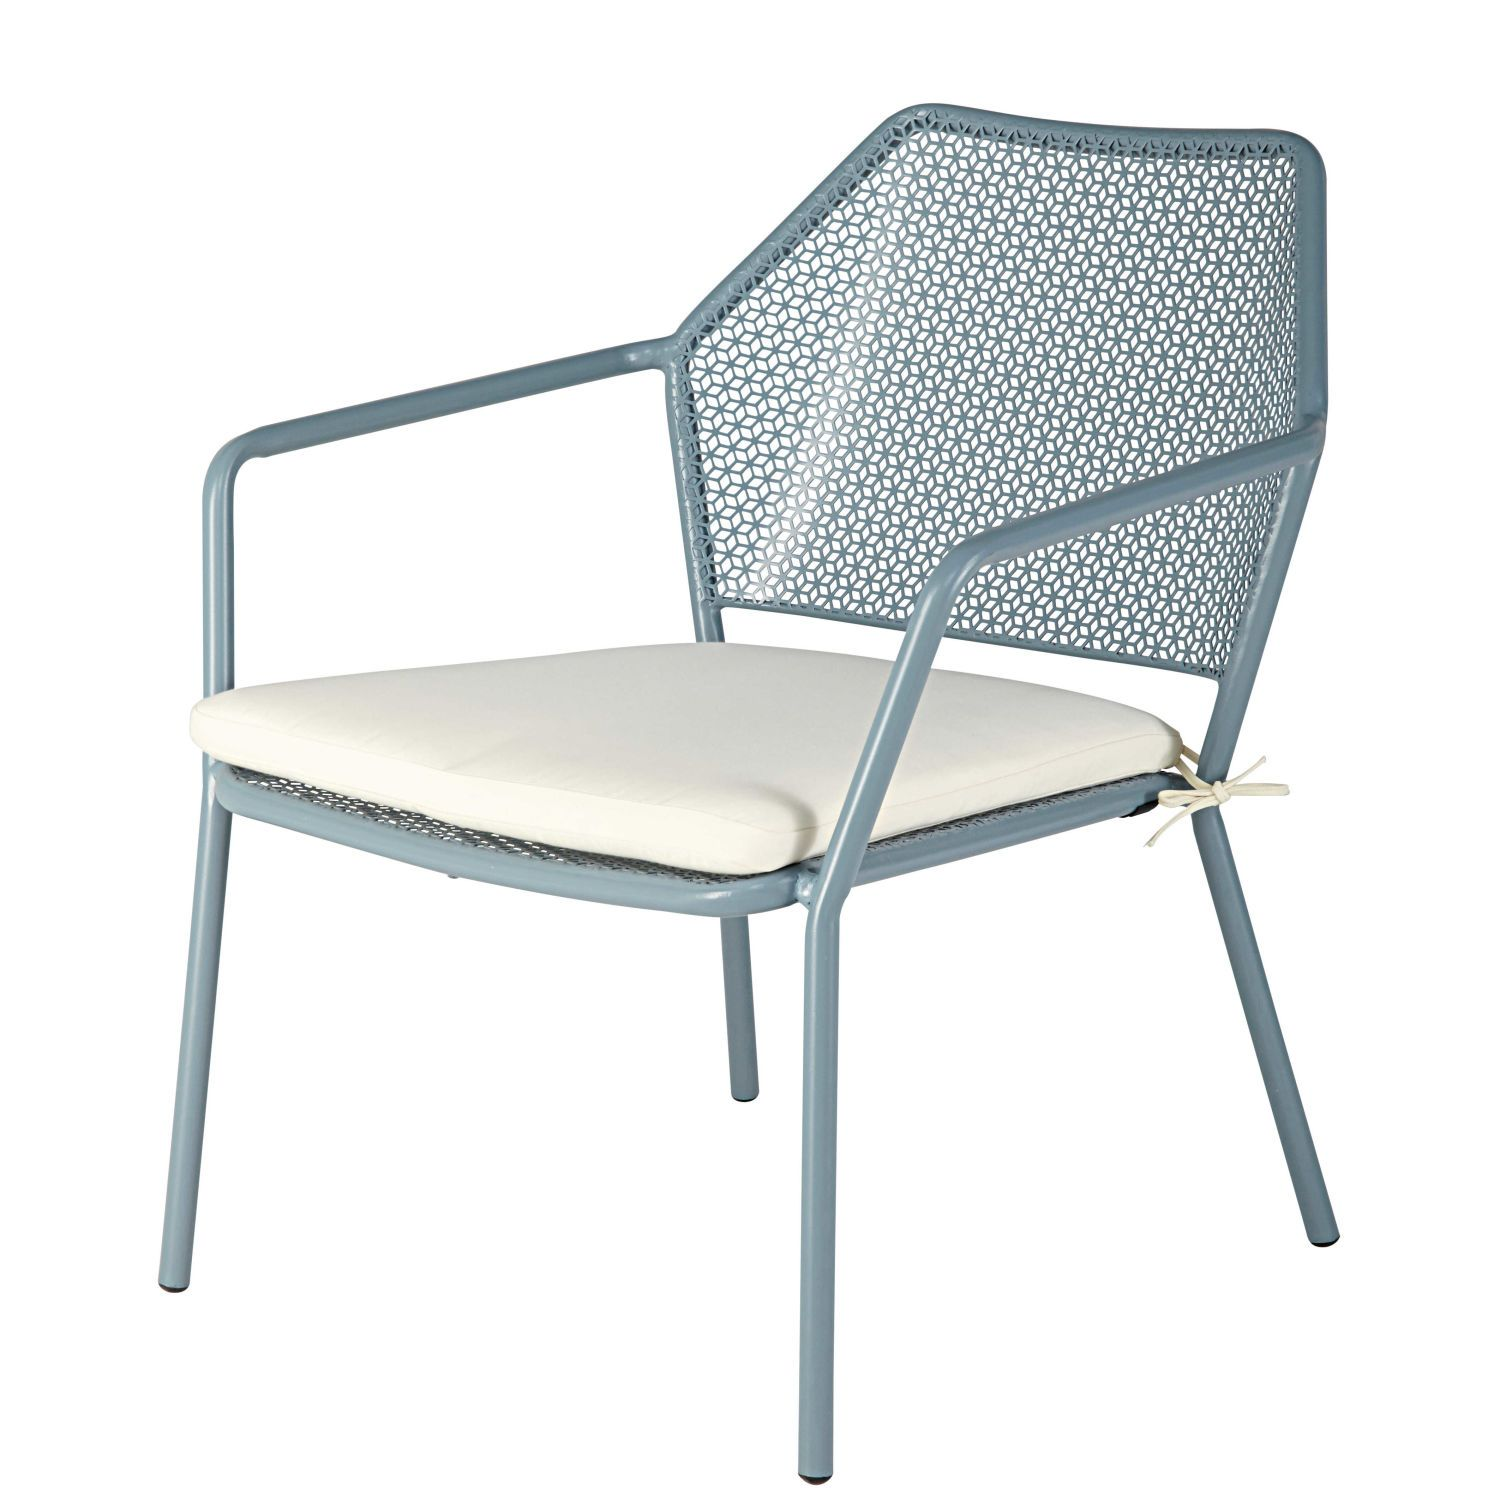 Stackable Garden Armchair In Blue Metal With White Cushion Maldives On Maisons Du Monde Take Your Pick From Our Furnitu White Cushions Outdoor Chairs Cushions